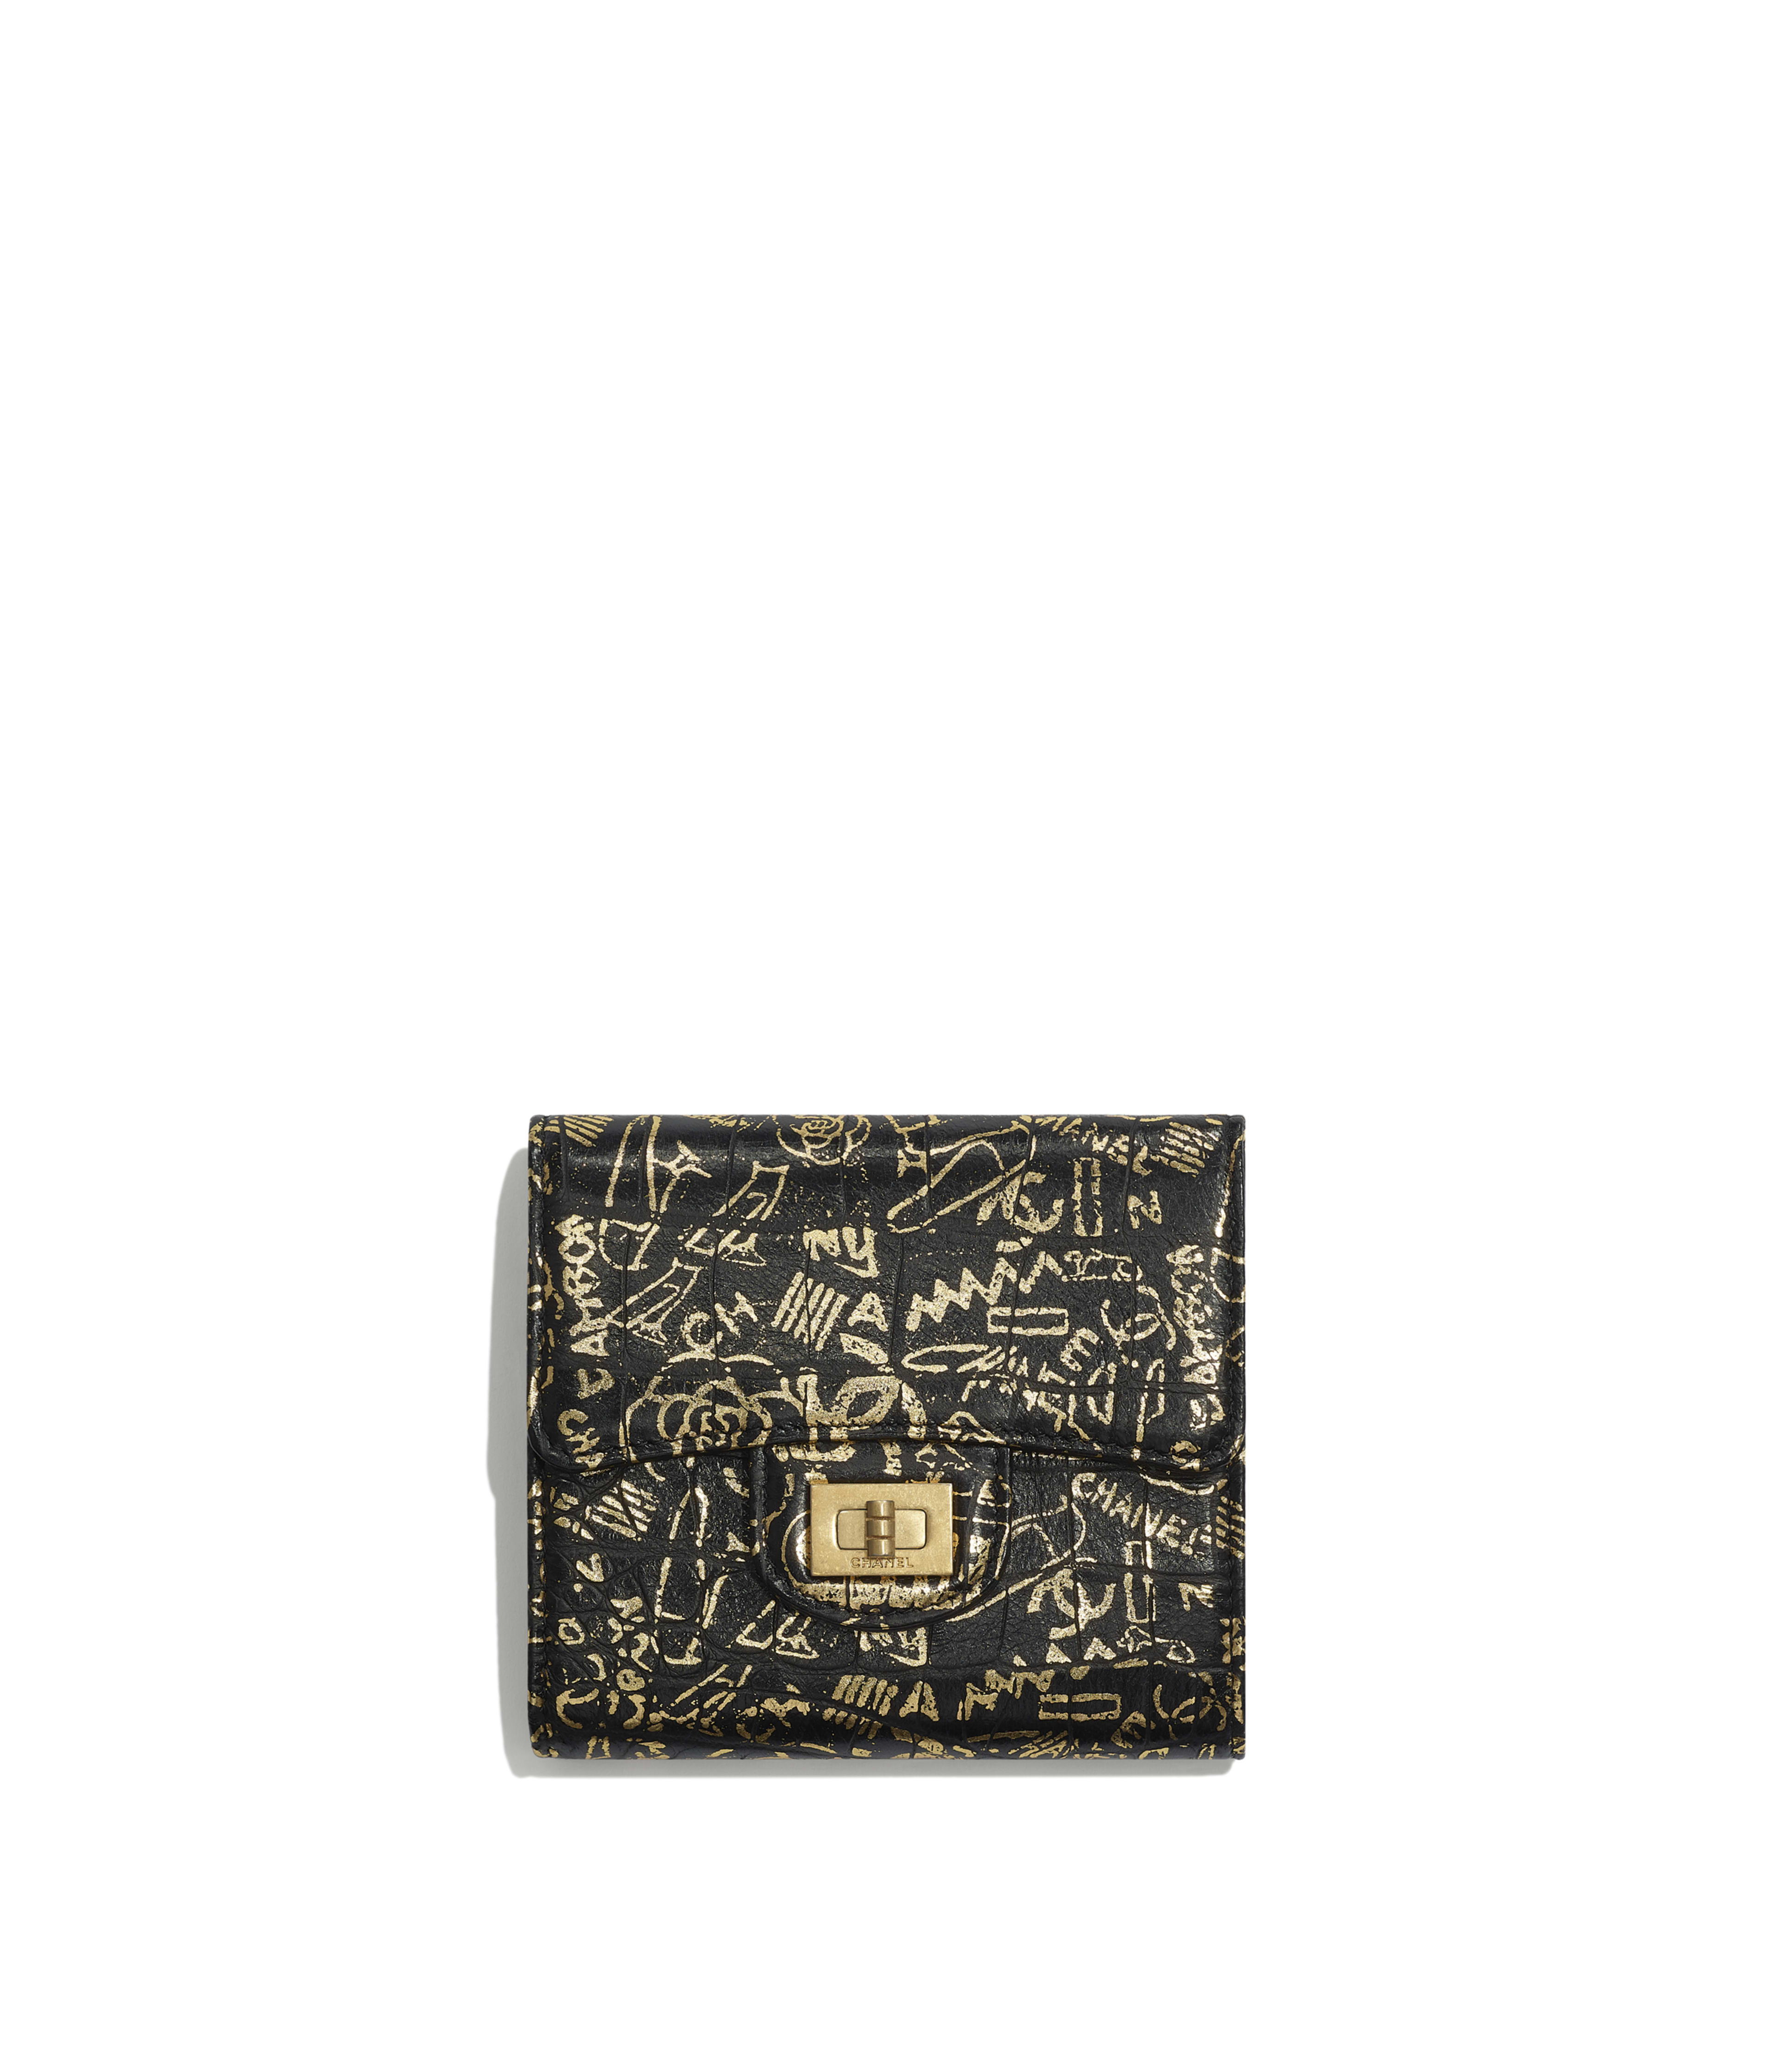 26fe53786653 2.55 Small Flap Wallet Crocodile Embossed Printed Leather & Gold-Tone  Metal, Black & Gold Ref. A80832B00979N0784